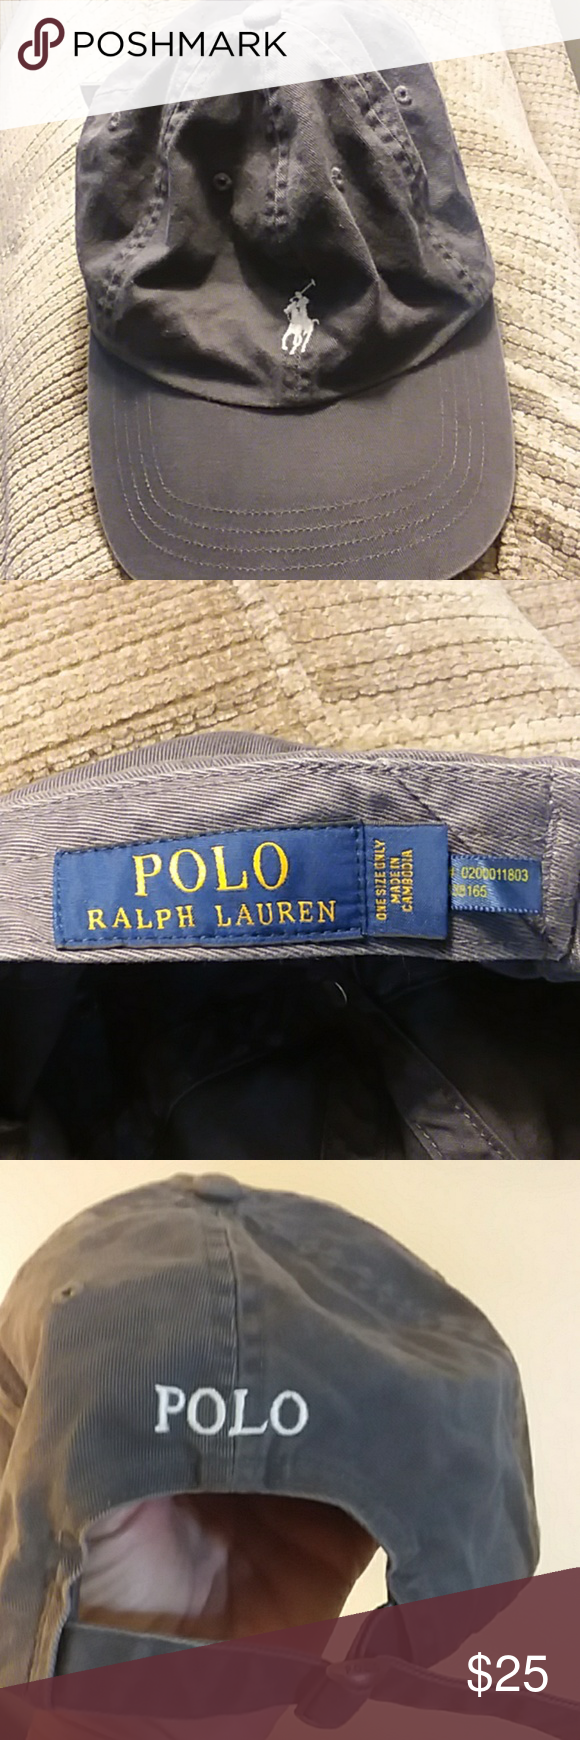 6ae84cdb00 Polo Ralph Lauren hat Great hat perfect condition worn once man or woman  hat once size does adjust Polo by Ralph Lauren Accessories Hats